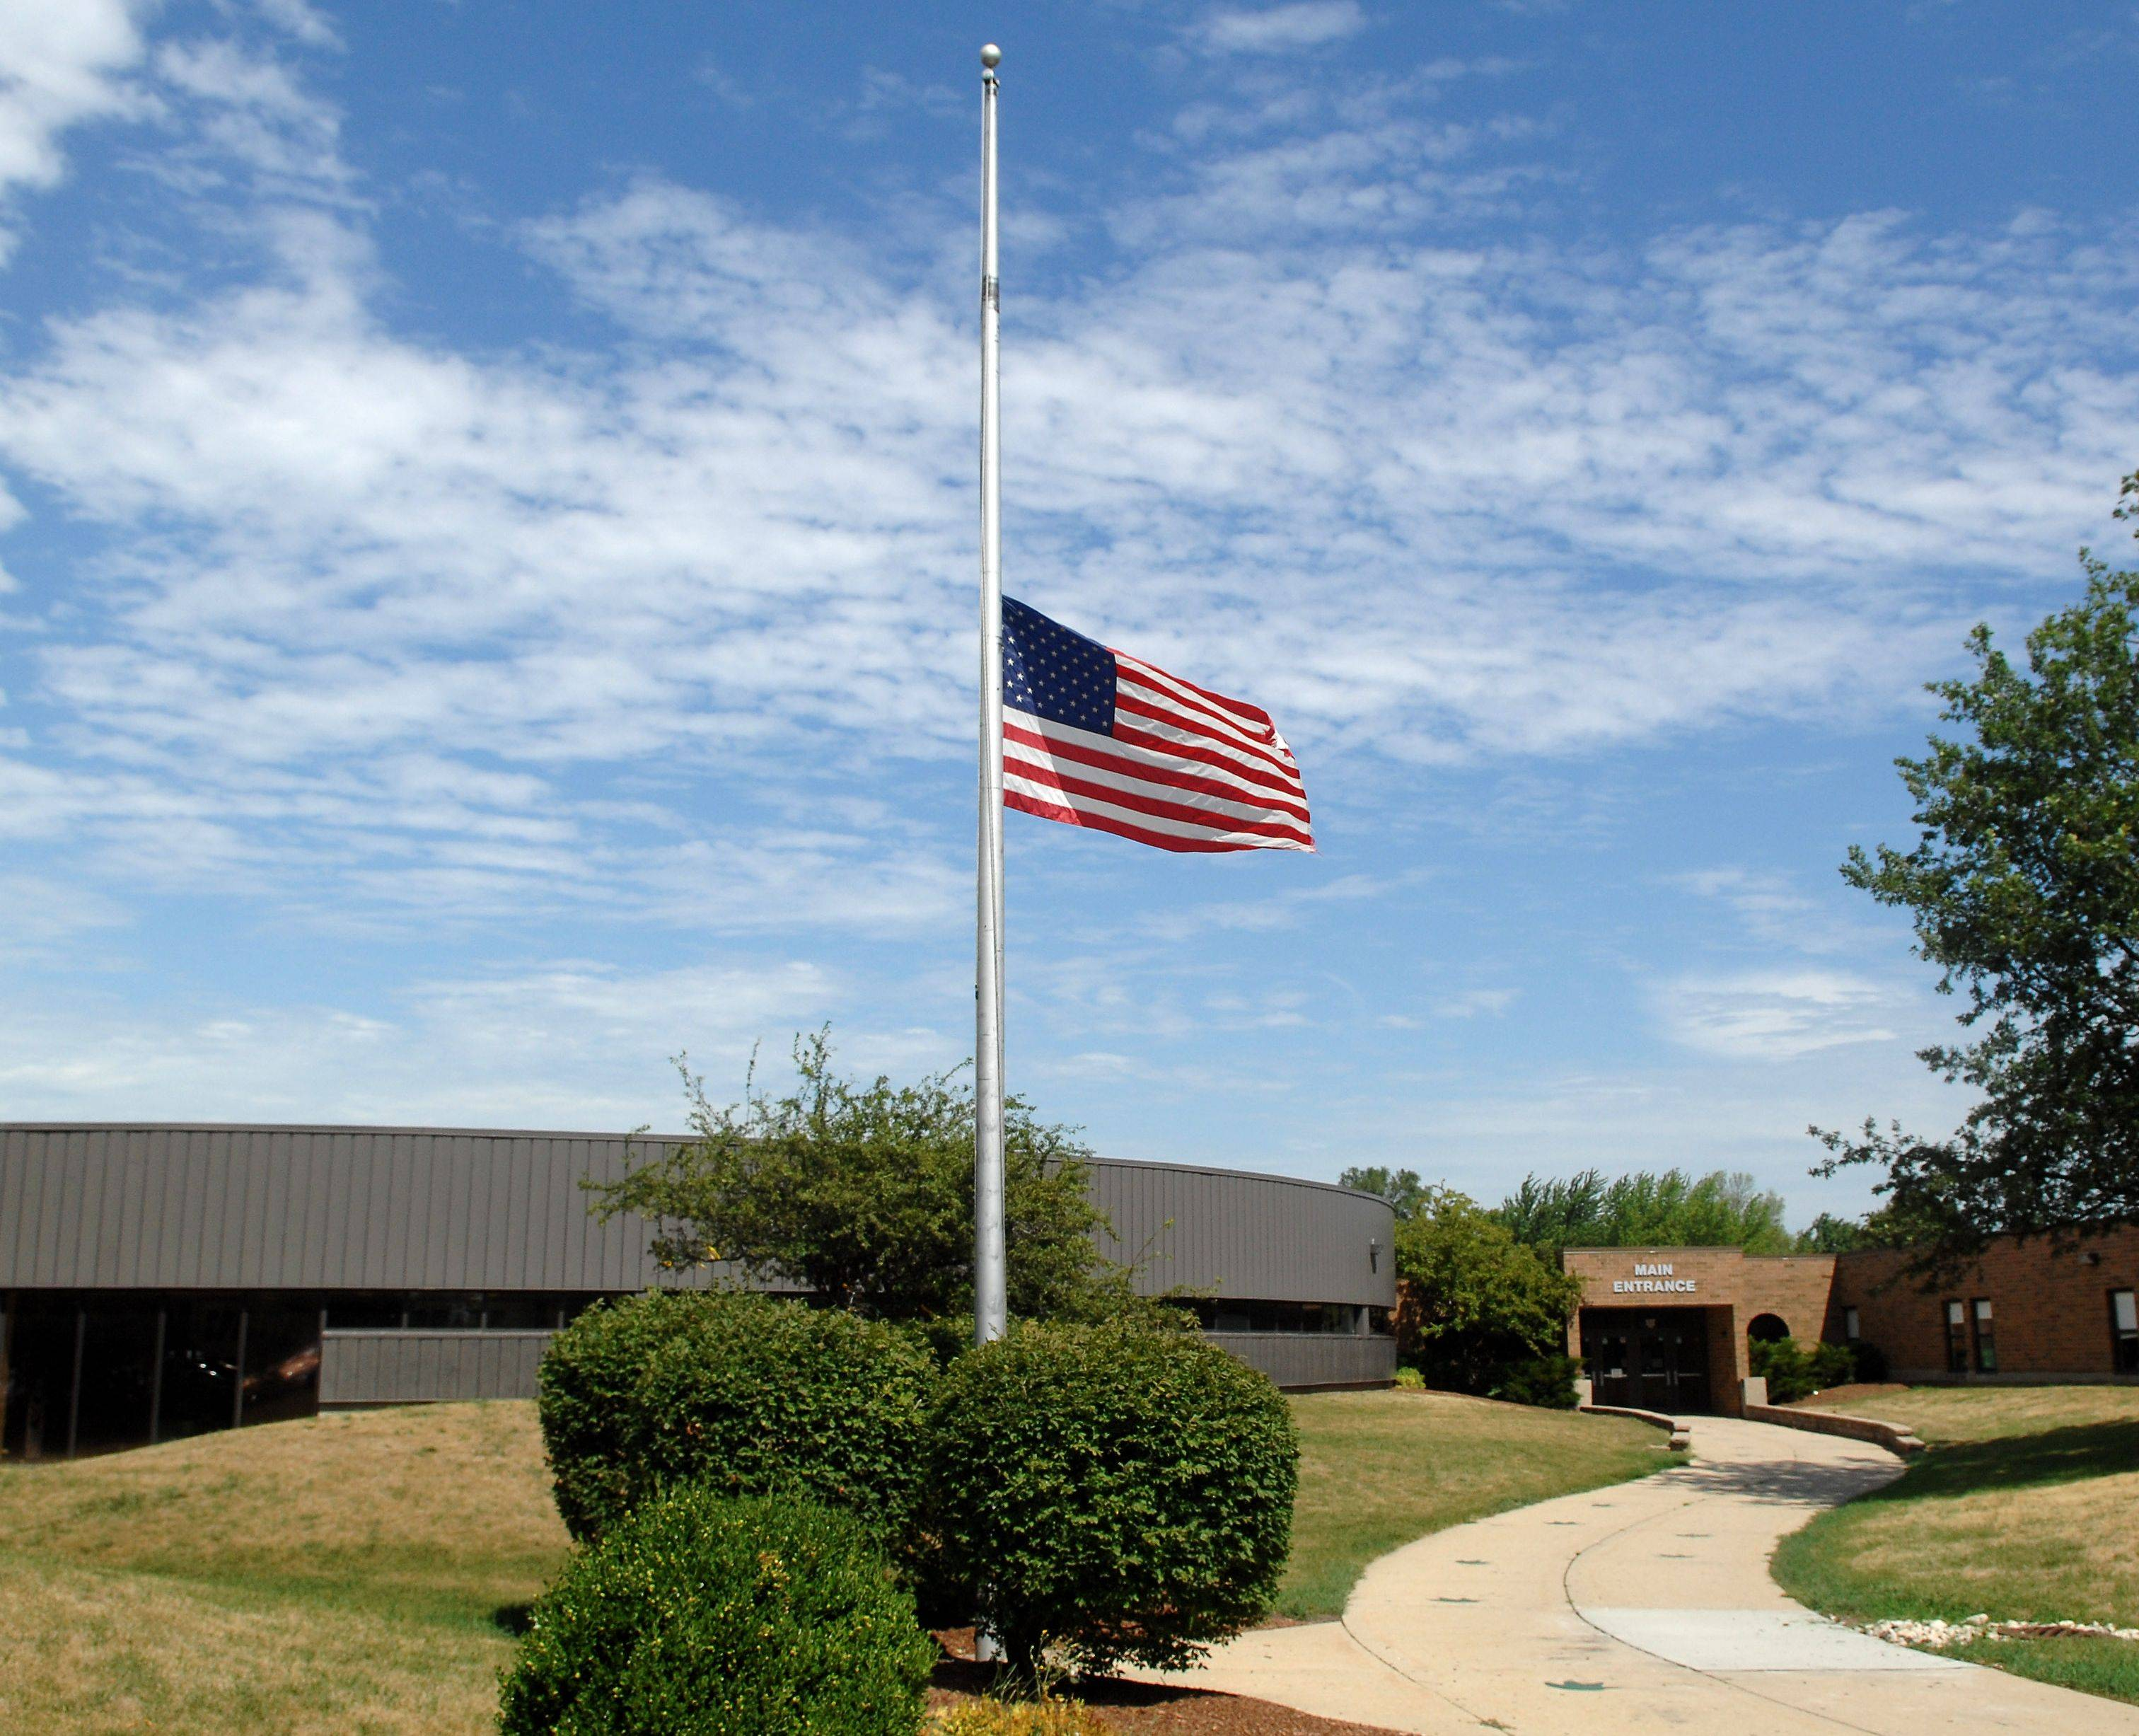 The flag was at half staff at Crystal Lake South High School Monday in honor of alumnus John Larimer, who was killed along with 11 others in the theater shooting in Colorado.